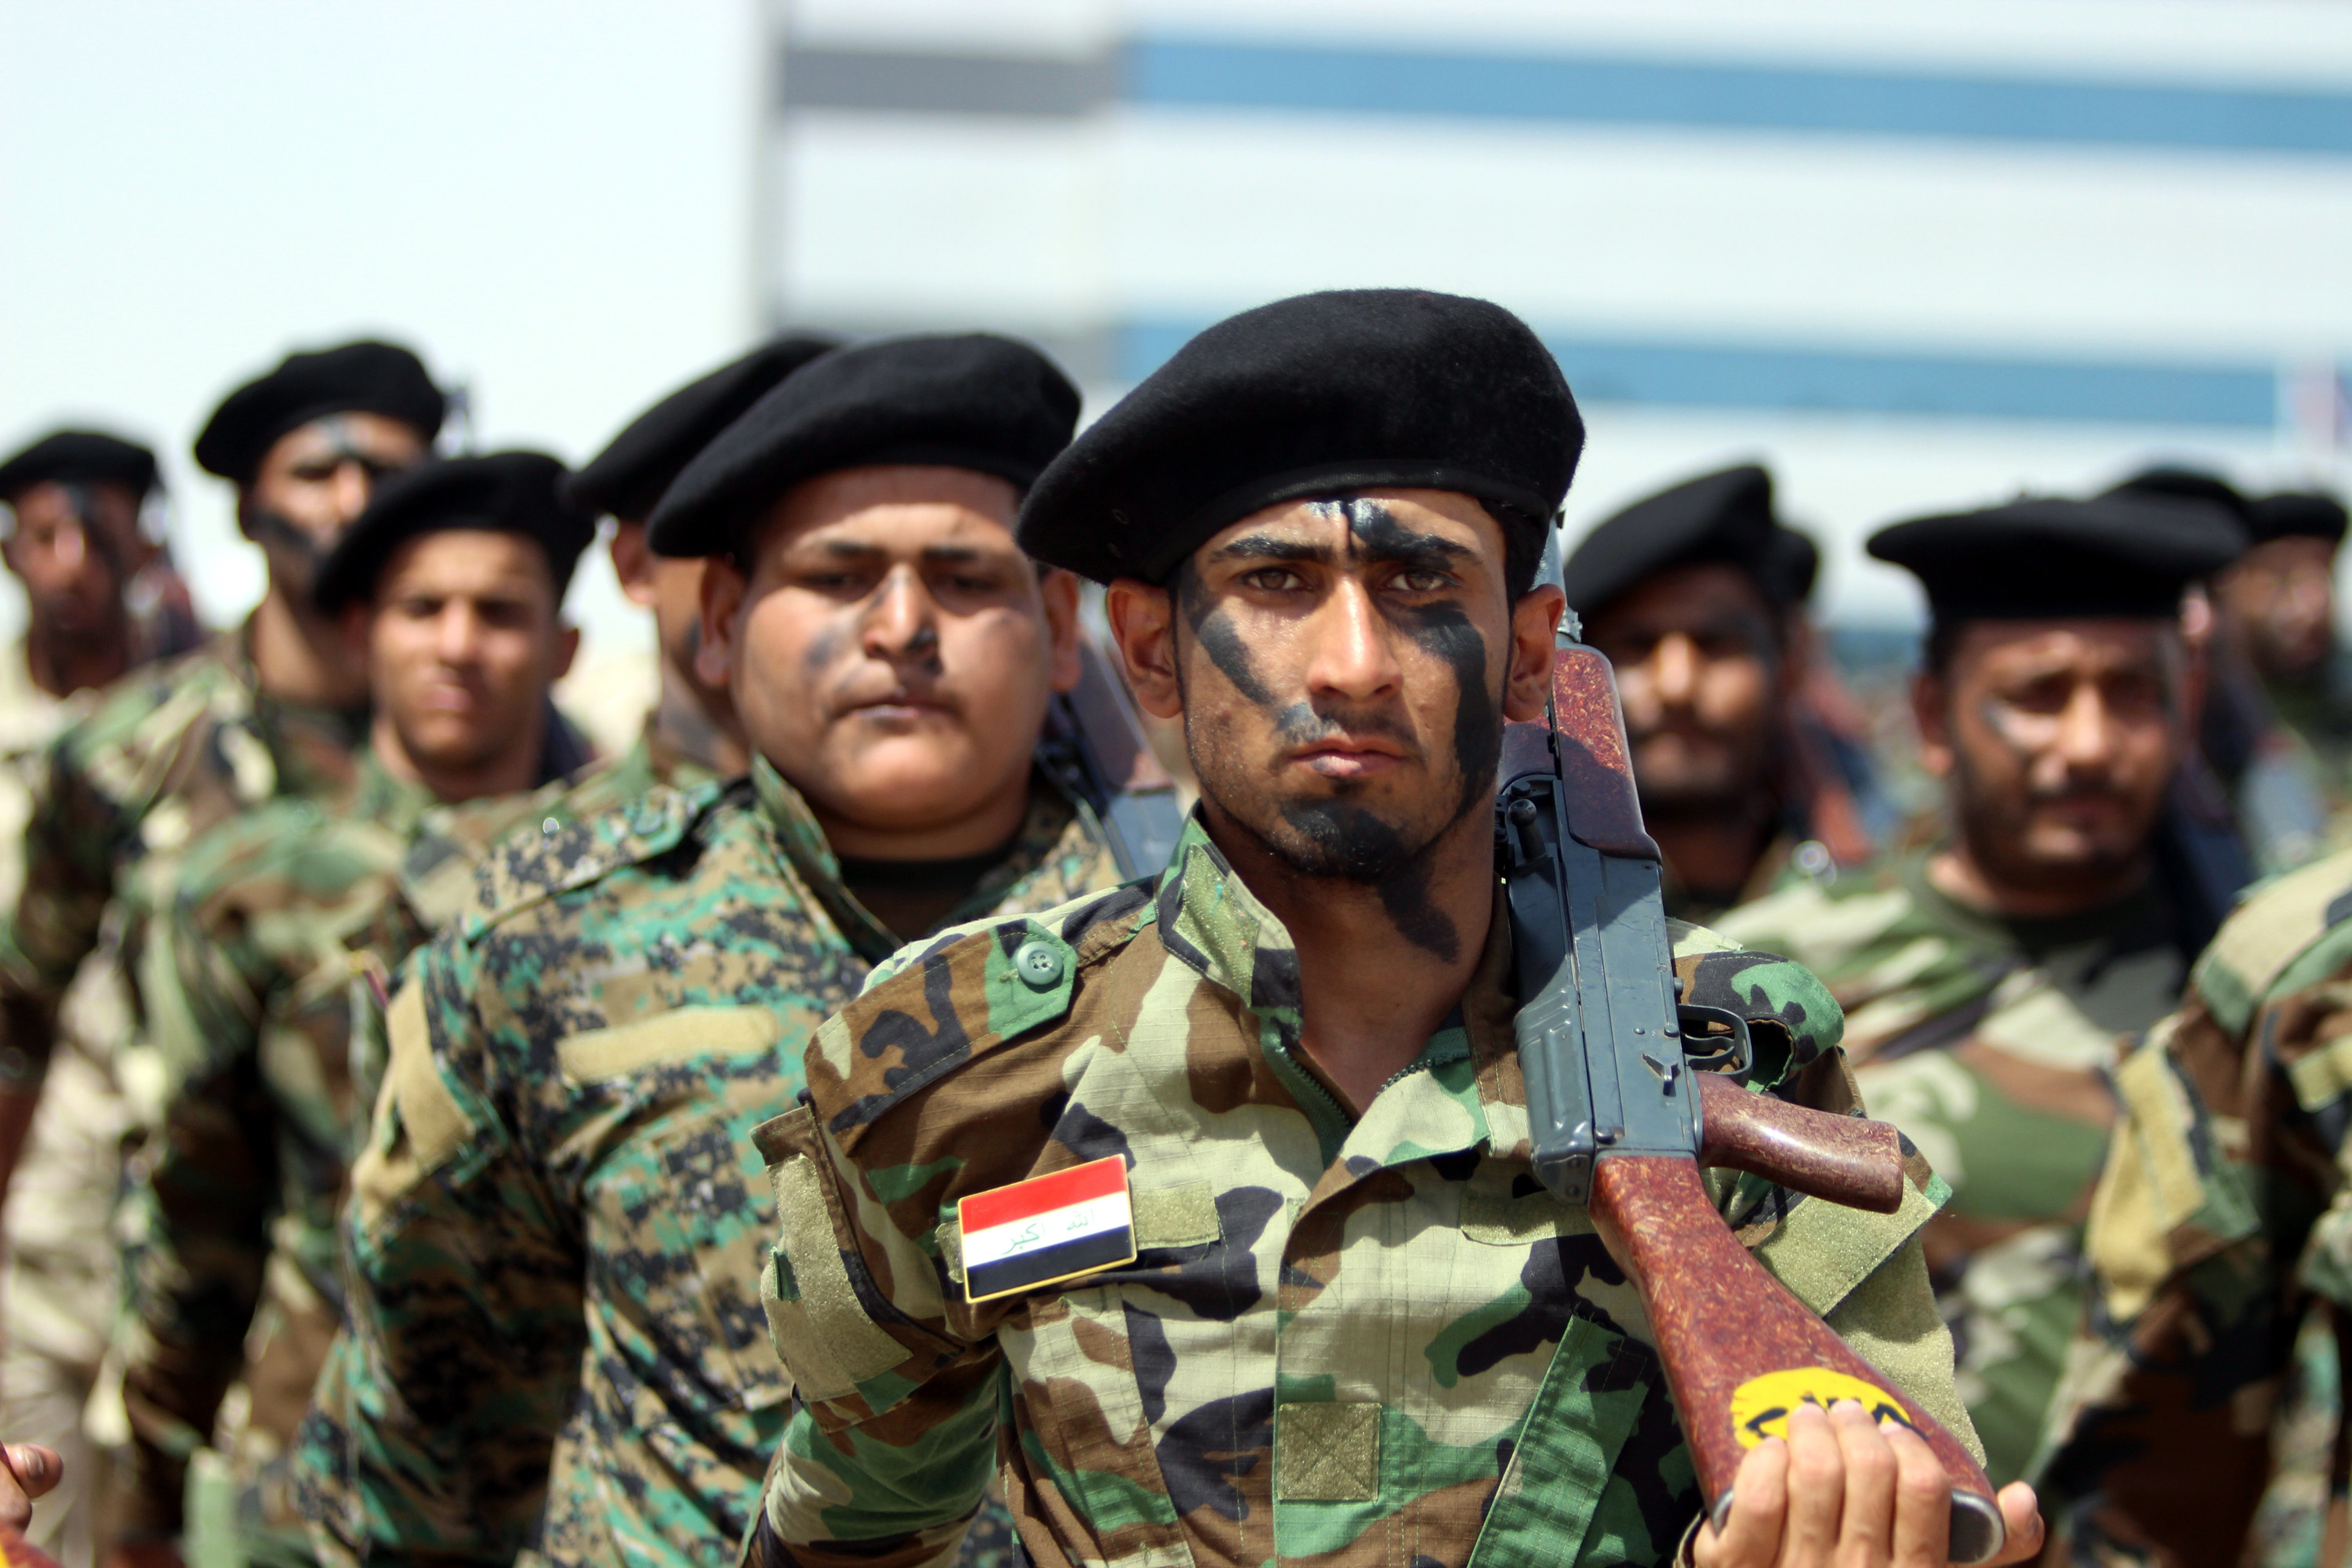 Whores in Tikrit